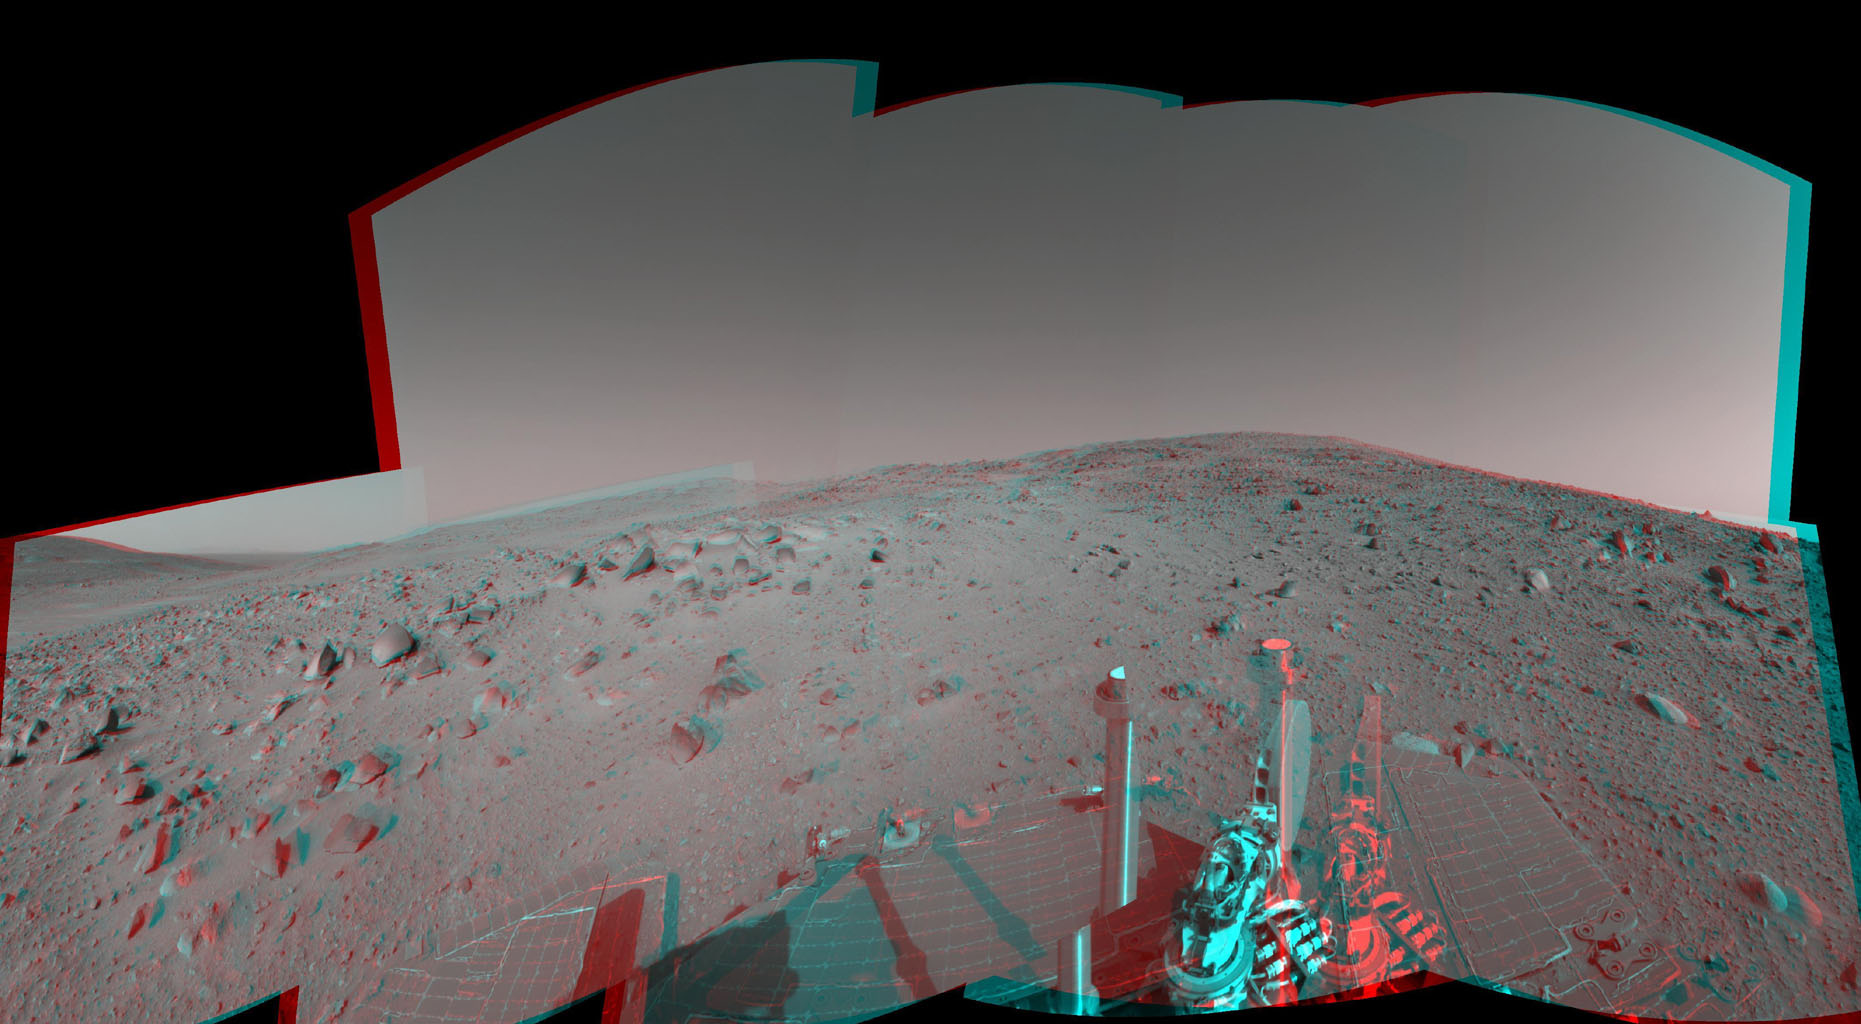 NASA's Mars Exploration Rover Spirit captured this view uphill toward 'Cumberland Ridge' on 'Husband Hill.' 3-D glasses are necessary to view this image.